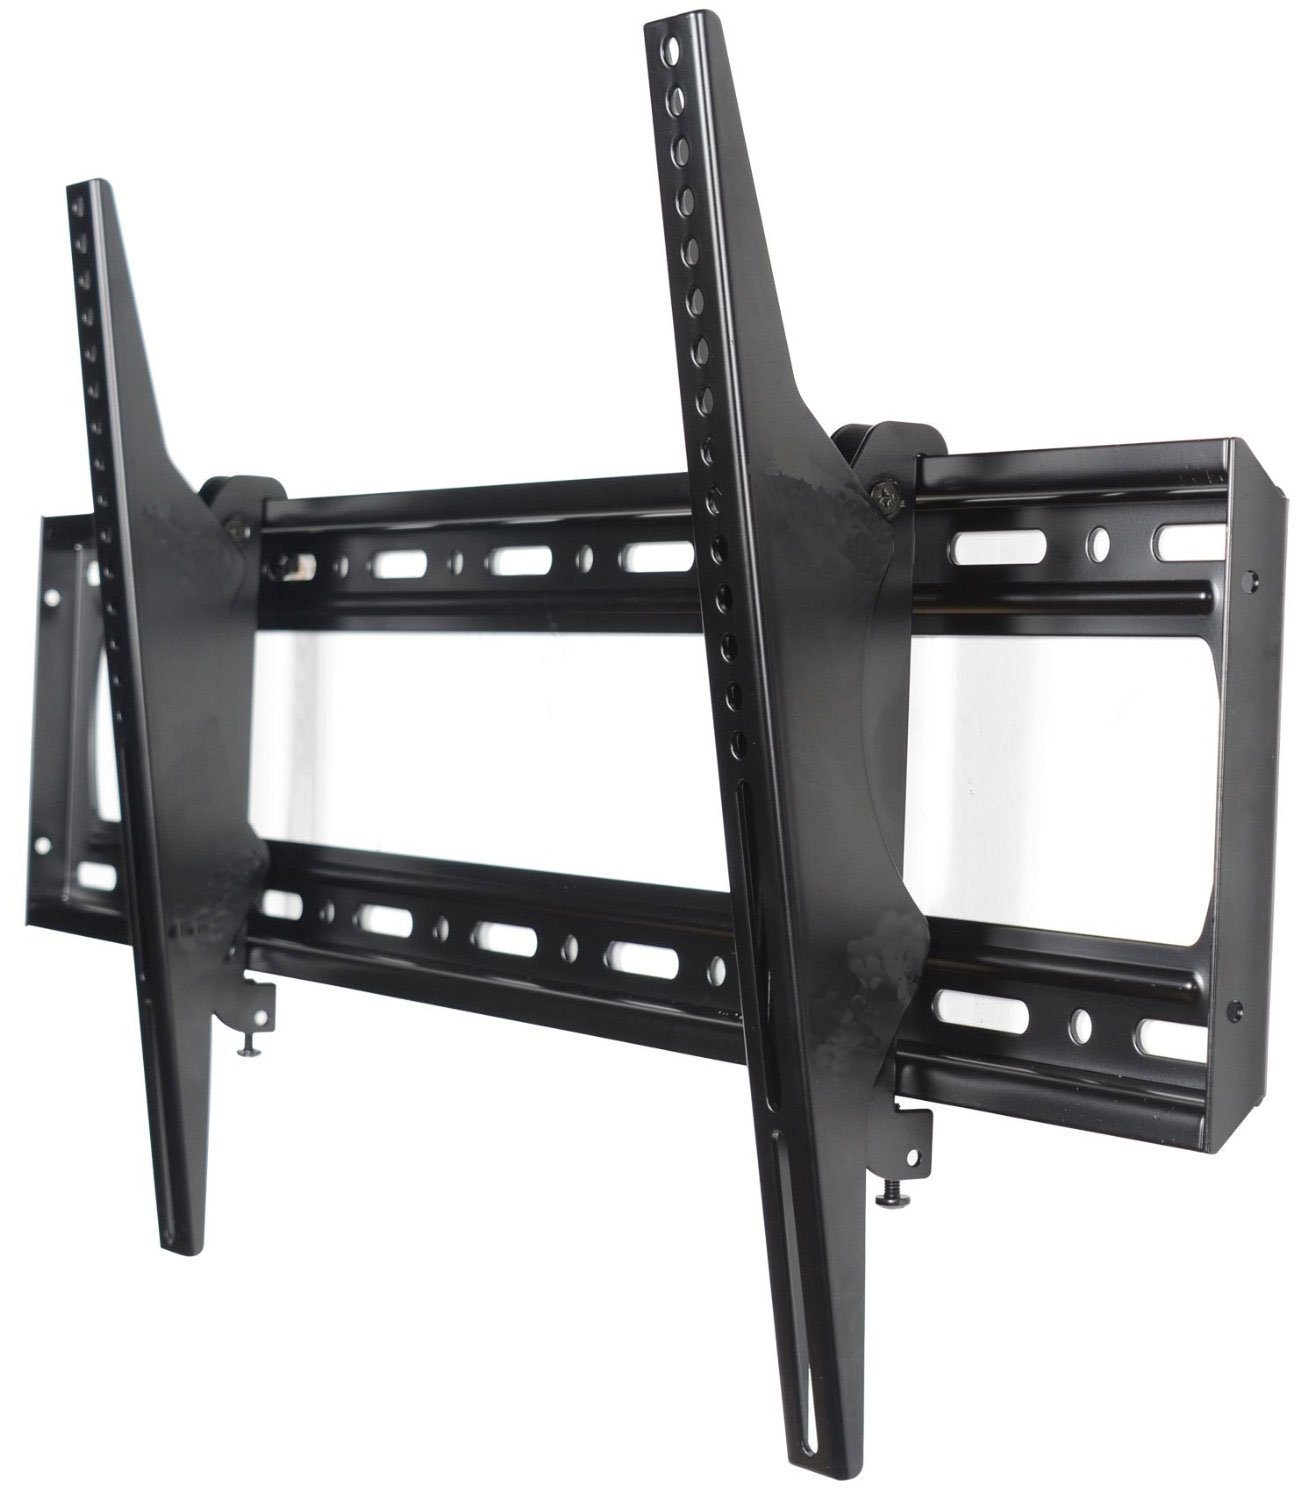 VideoSecu Tilting Extra Large TV Wall Mount Bracket for most 40''-80'' LED LCD Plasma OLED 3D TV up to VESA 800x400mm and 220 LBS Loading Capacity, Compatible with Sony,Samsung,LG,Sharp,Vizio MP804B MZ8